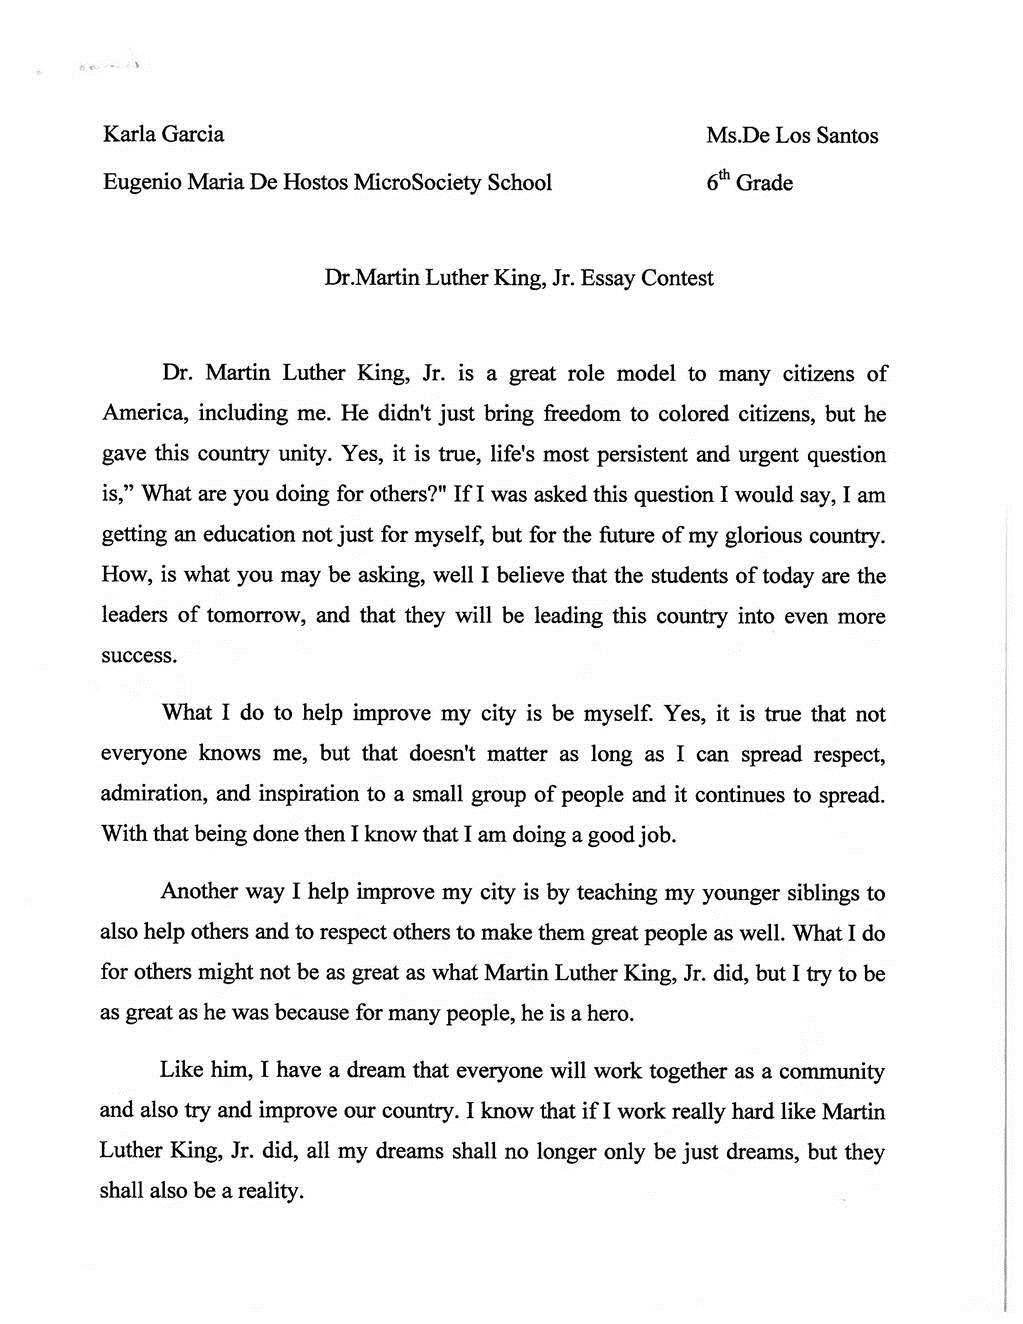 essays about martin luther king jr an essay on martin luther king essays about martin luther king jr gxart org martin luther king jr essay city amp